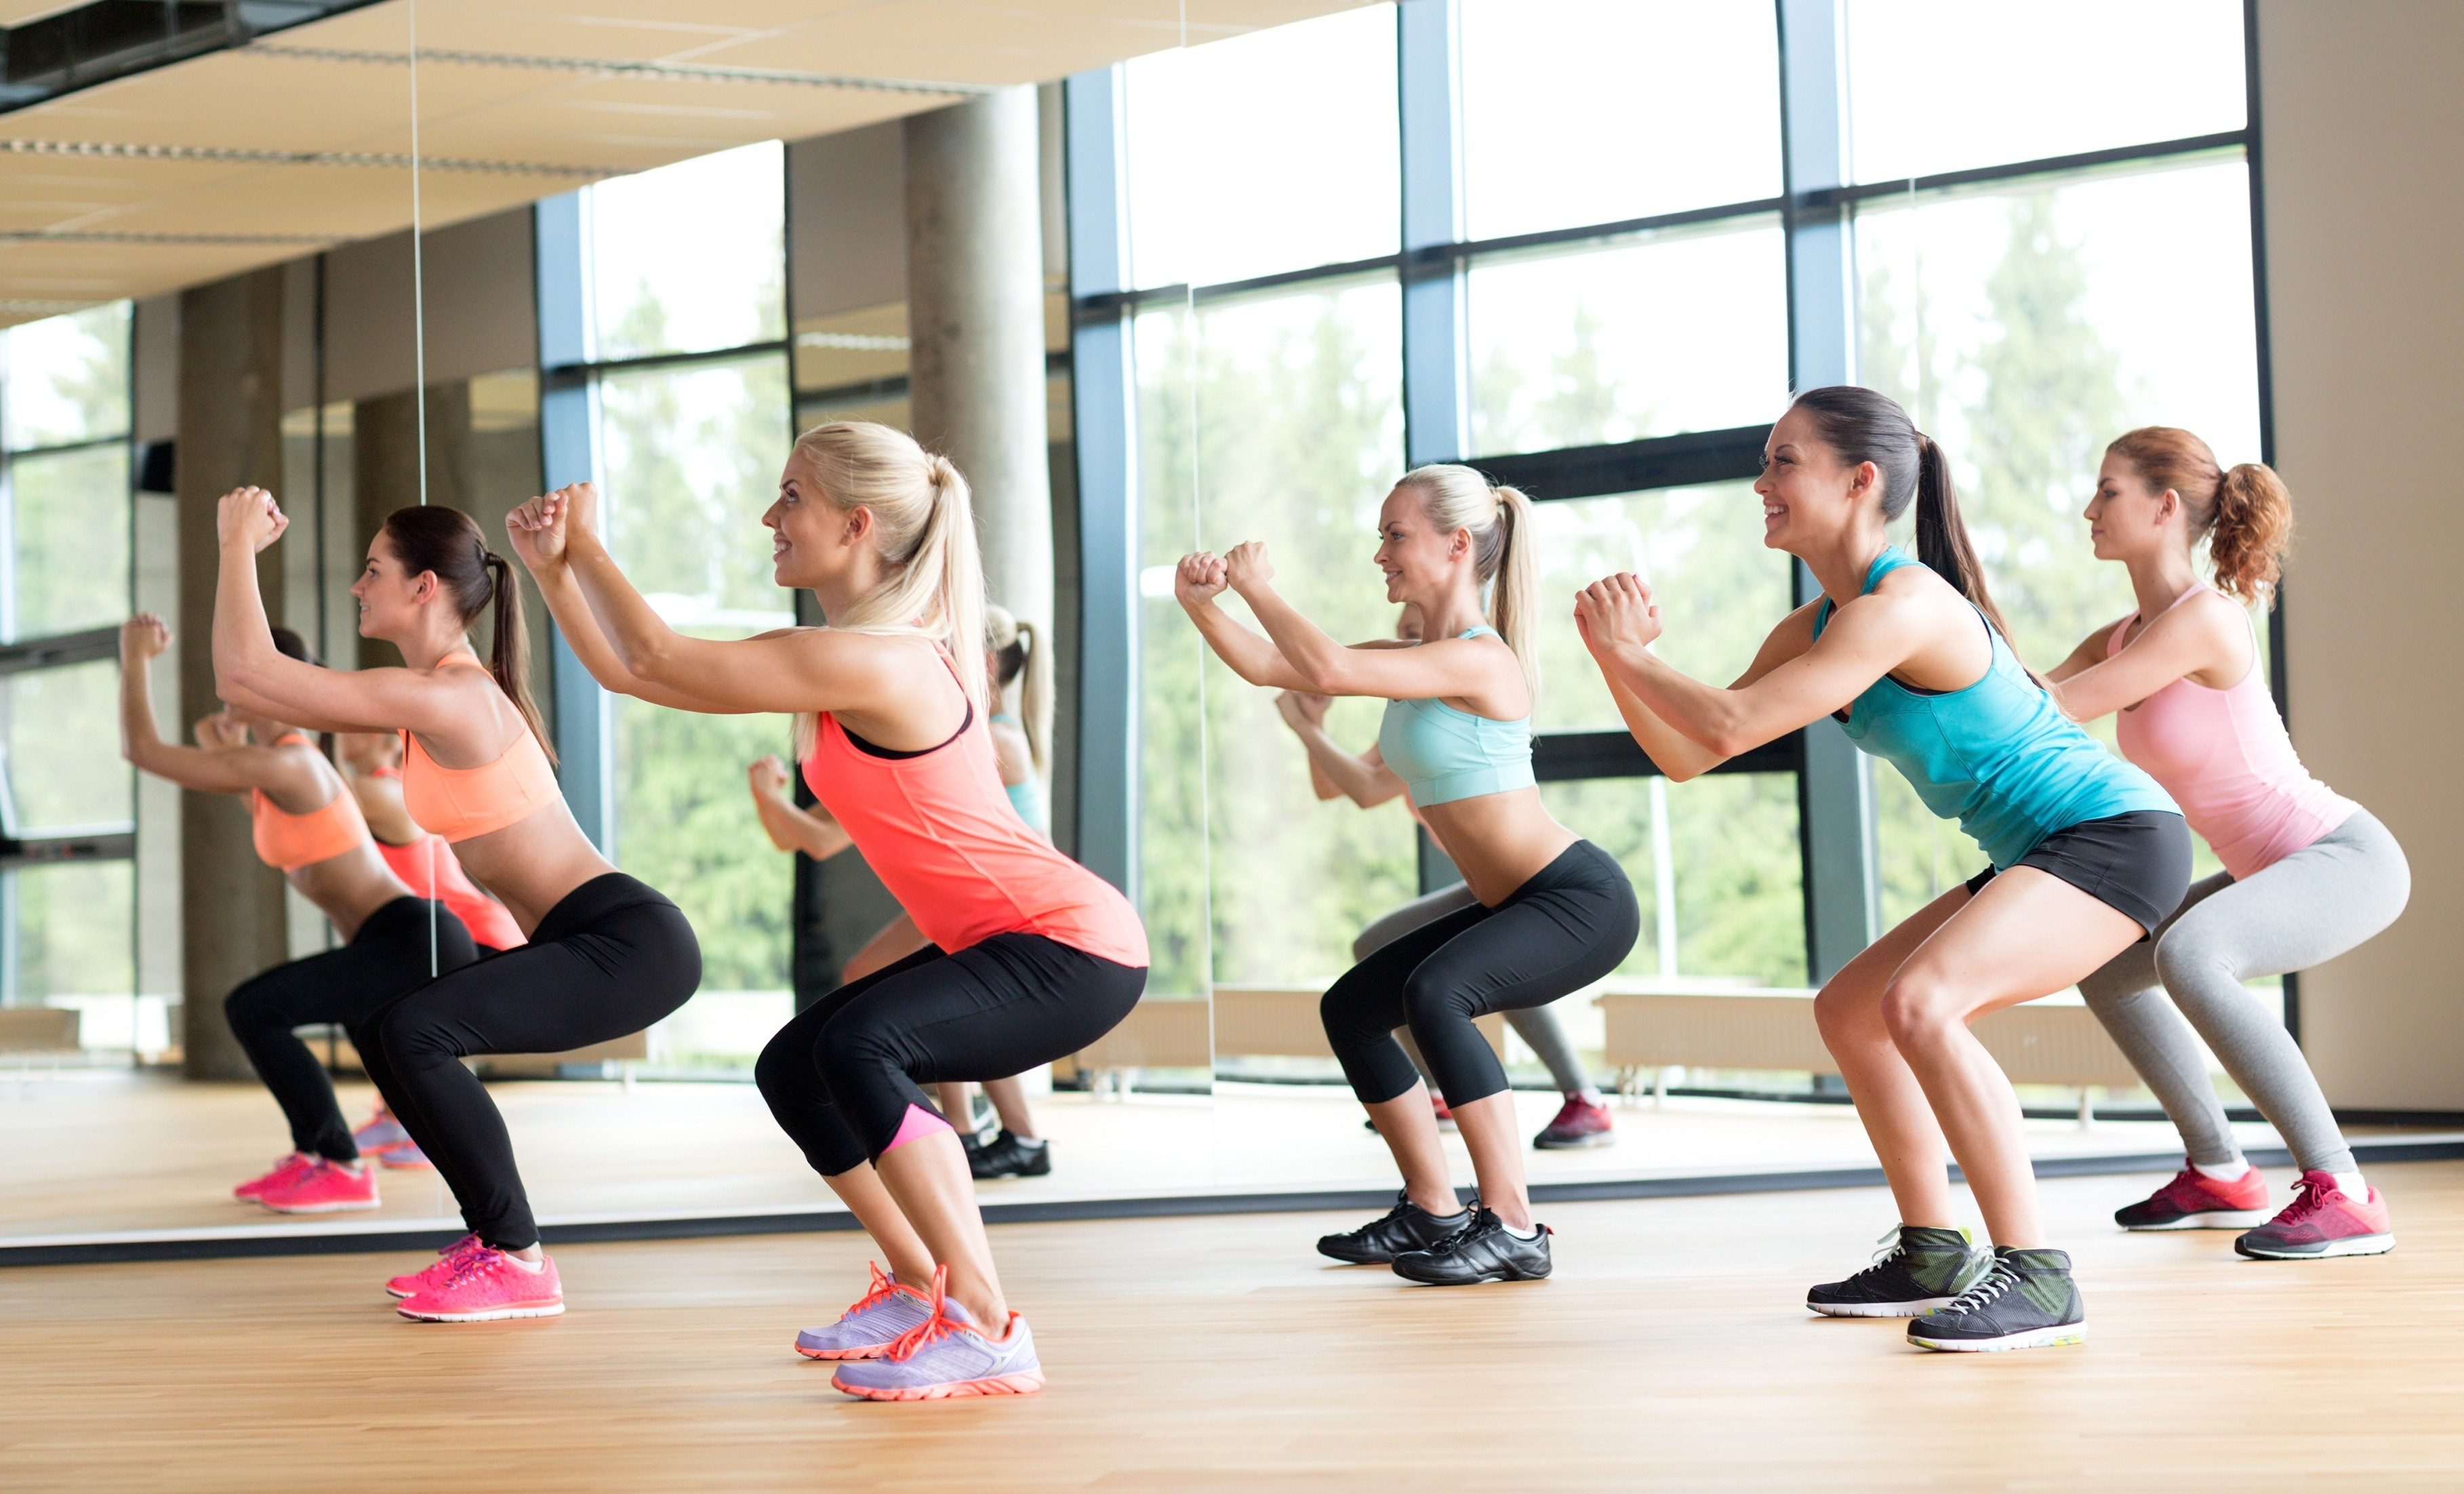 a group of women working out in the gym health hd wallpaper 3635x2204 wallpaper vactual papers. Black Bedroom Furniture Sets. Home Design Ideas